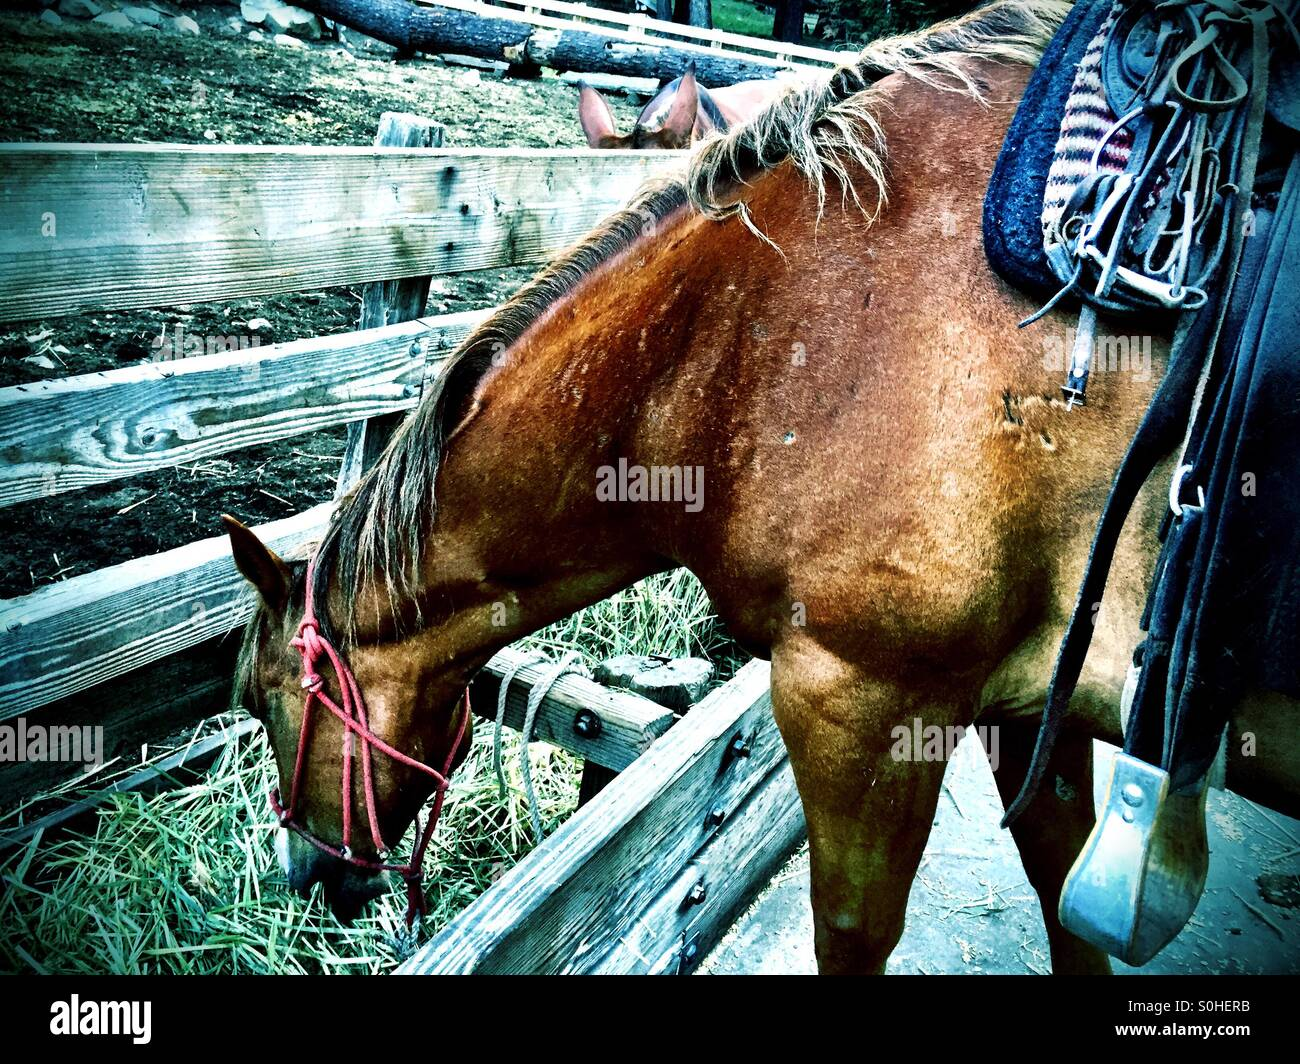 Pack horse morning tack and feed before a long day's ride. - Stock Image